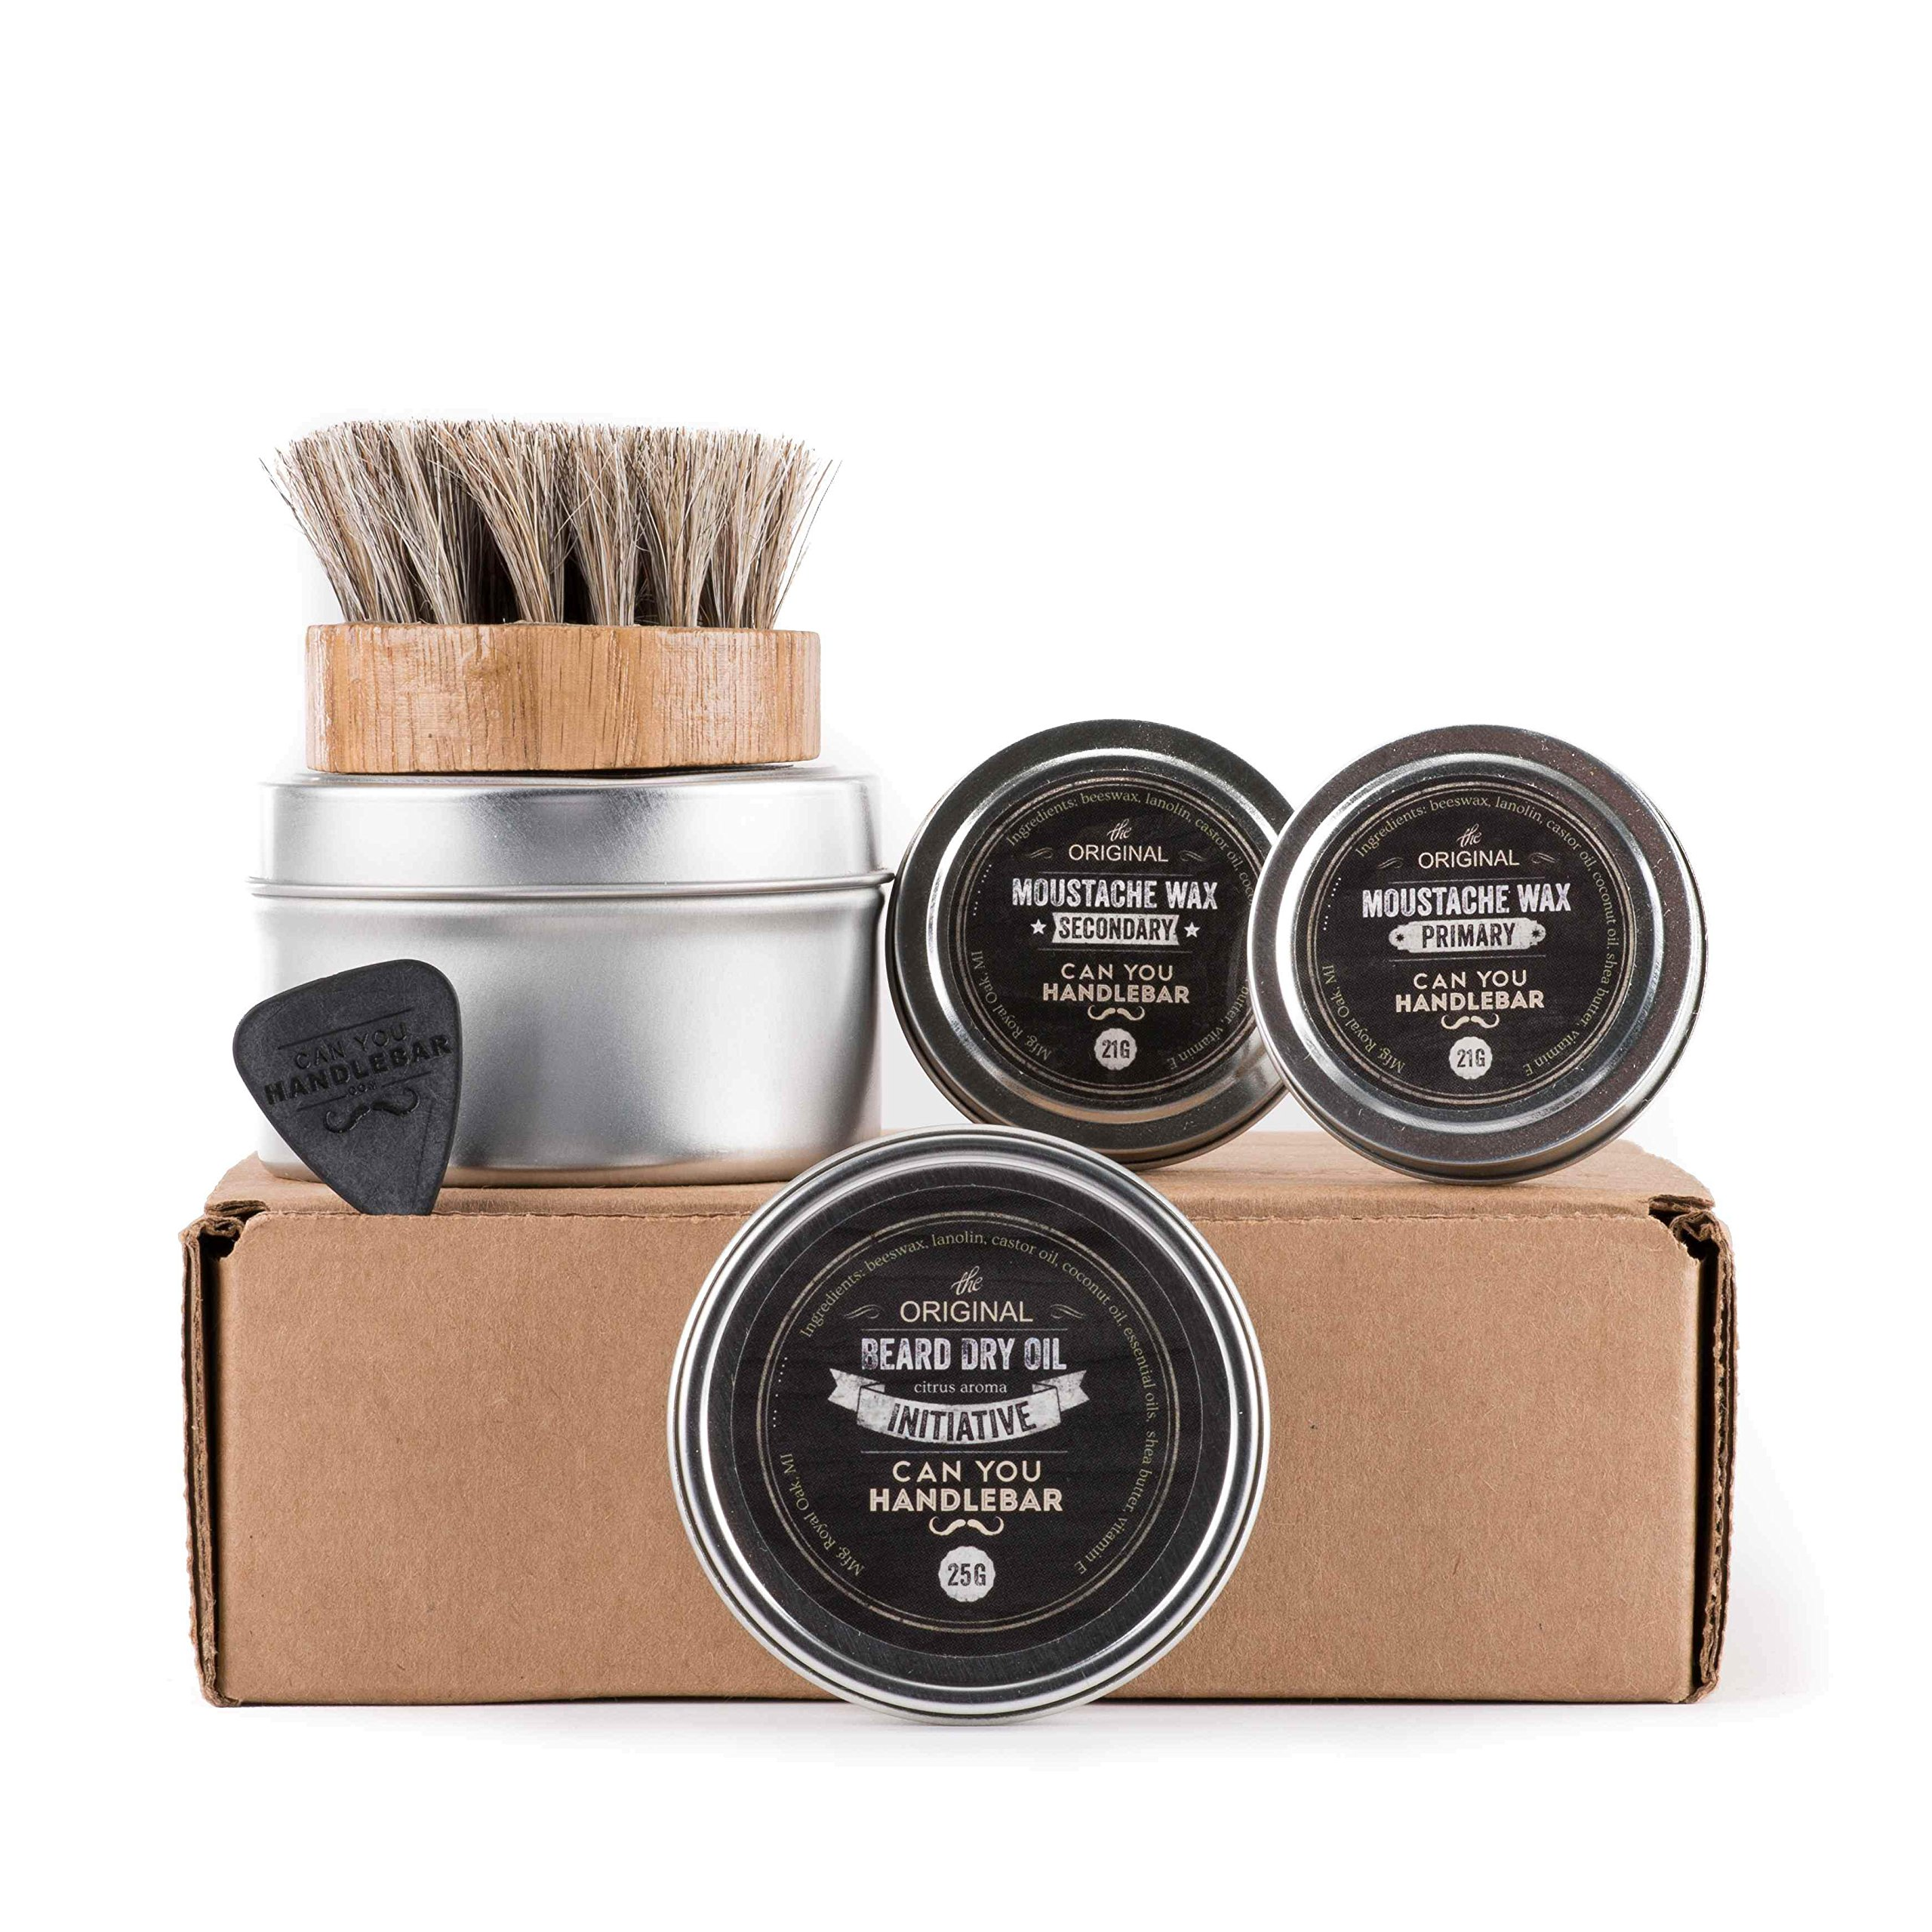 CanYouHandlebar Basic Beard Care Kit : Initiative Beard Dry Oil by CanYouHandlebar